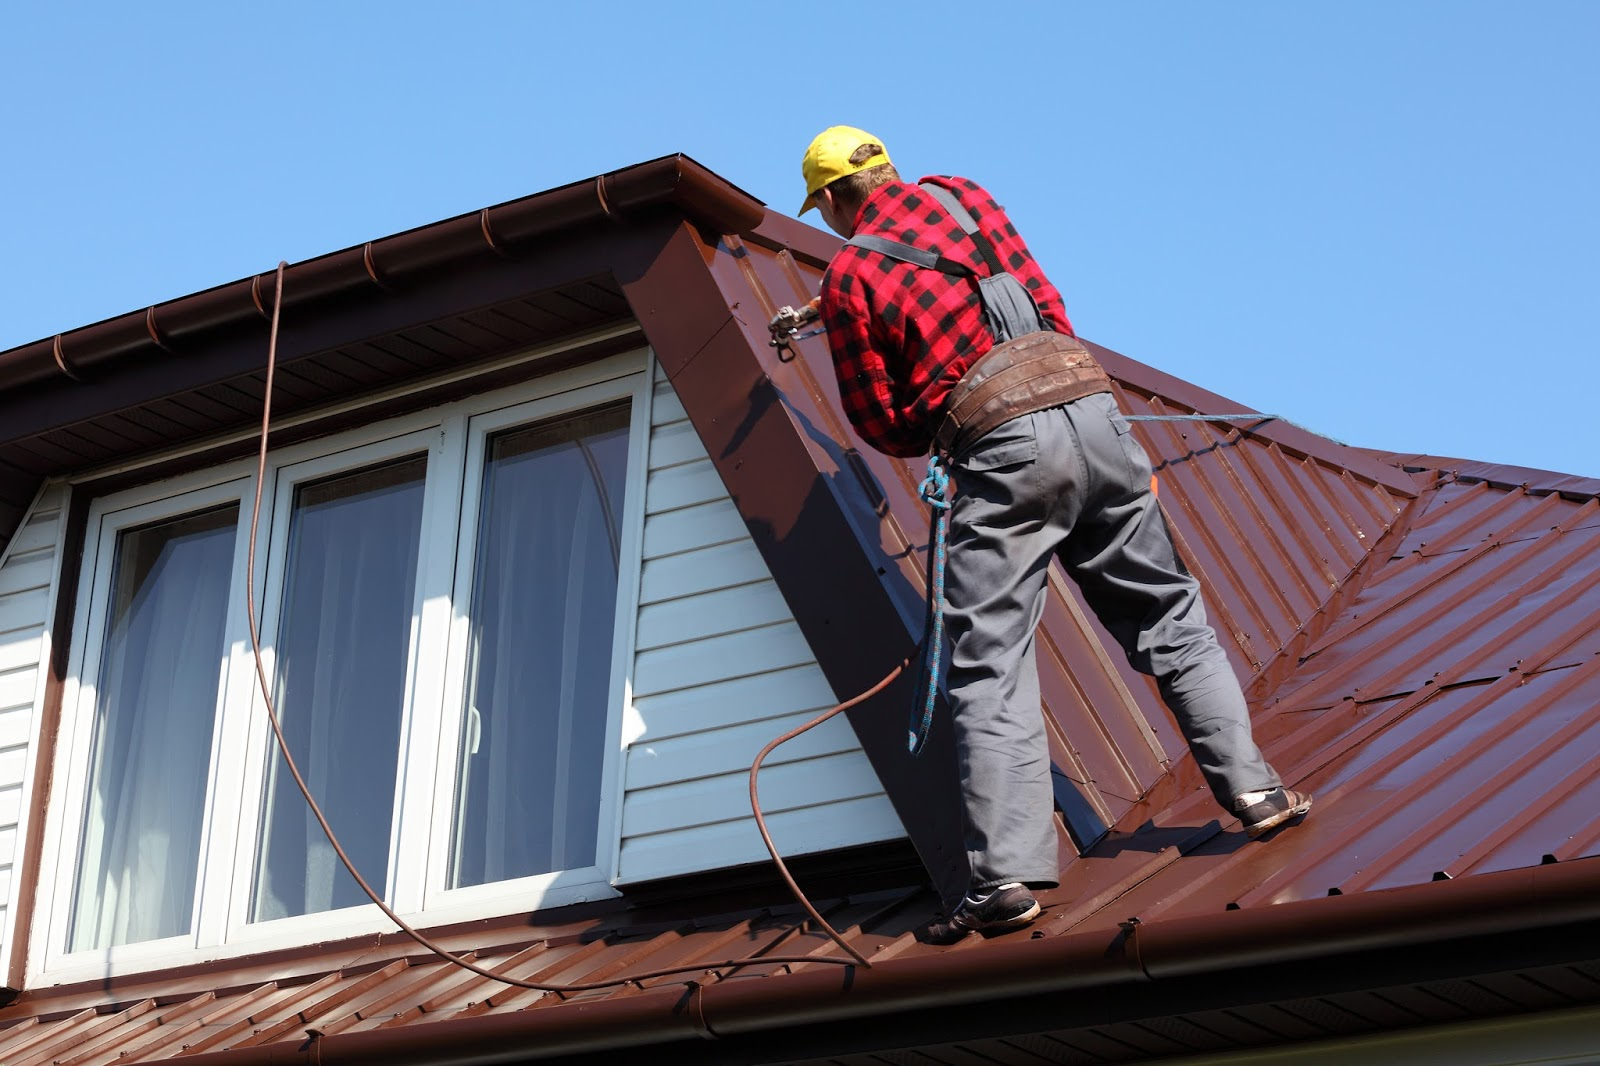 The saying  better safe than sorry  rings very true when it comes to roofing repairs. & Southeastern Premier Roofing | Southeastern Premier Roofing memphite.com